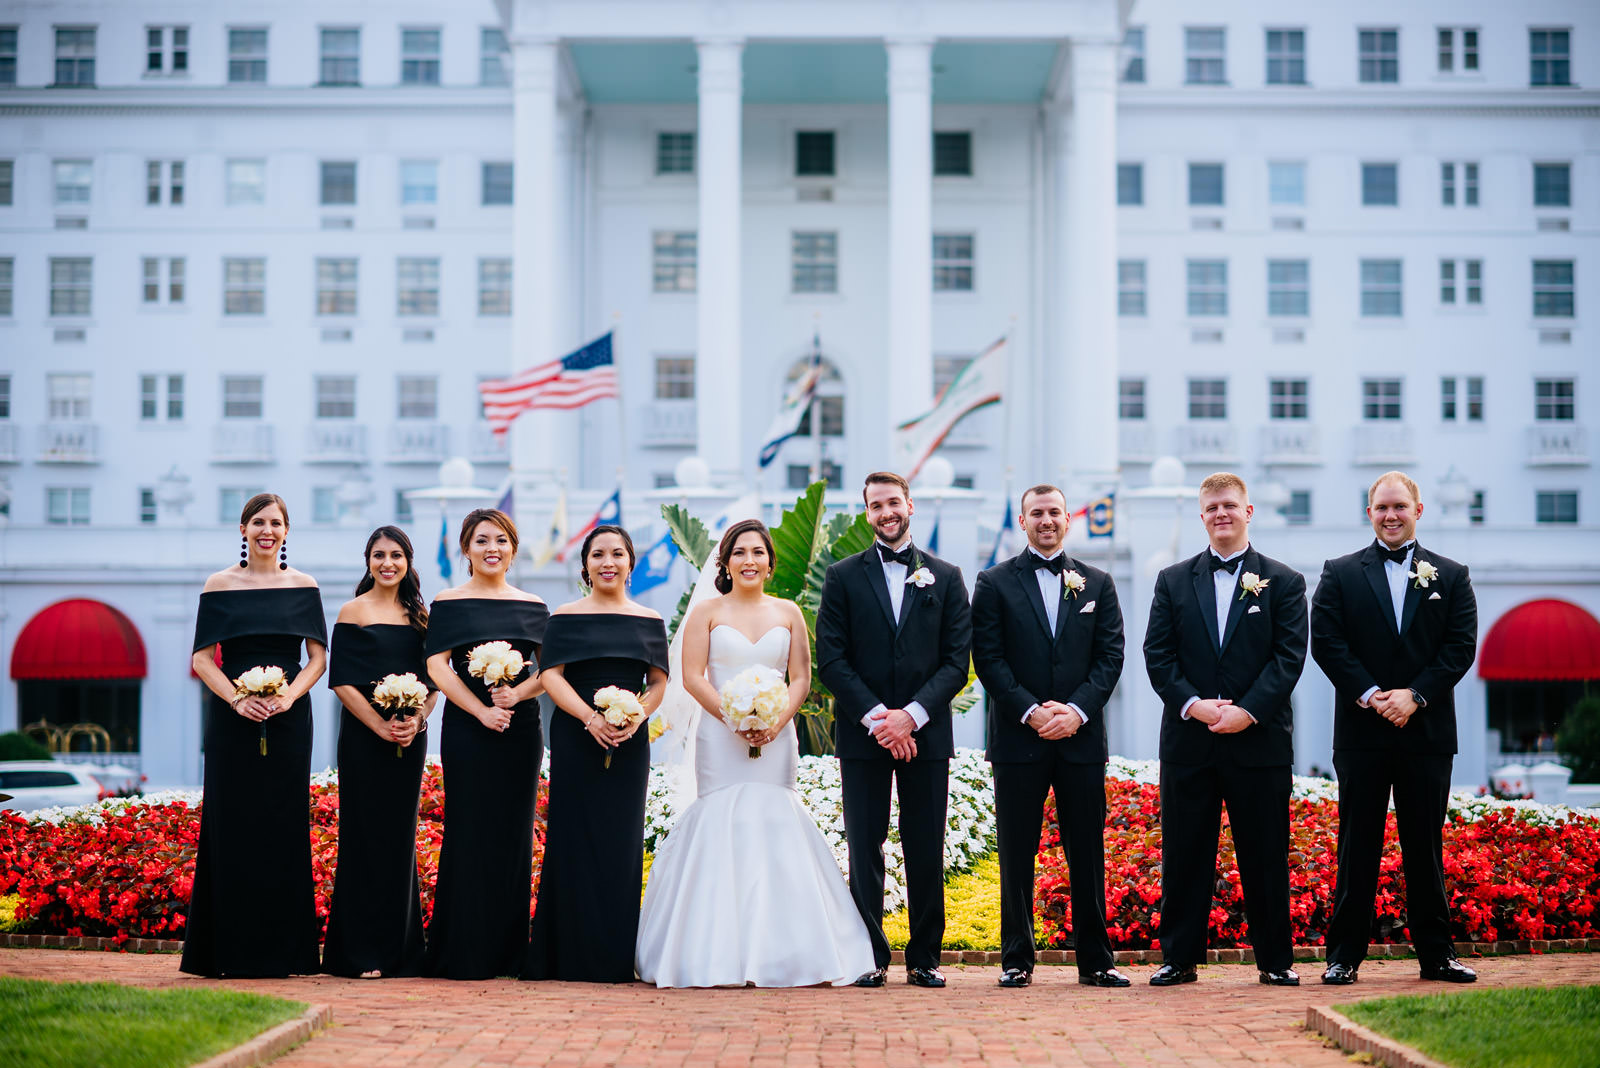 wedding party photos greenbrier resort